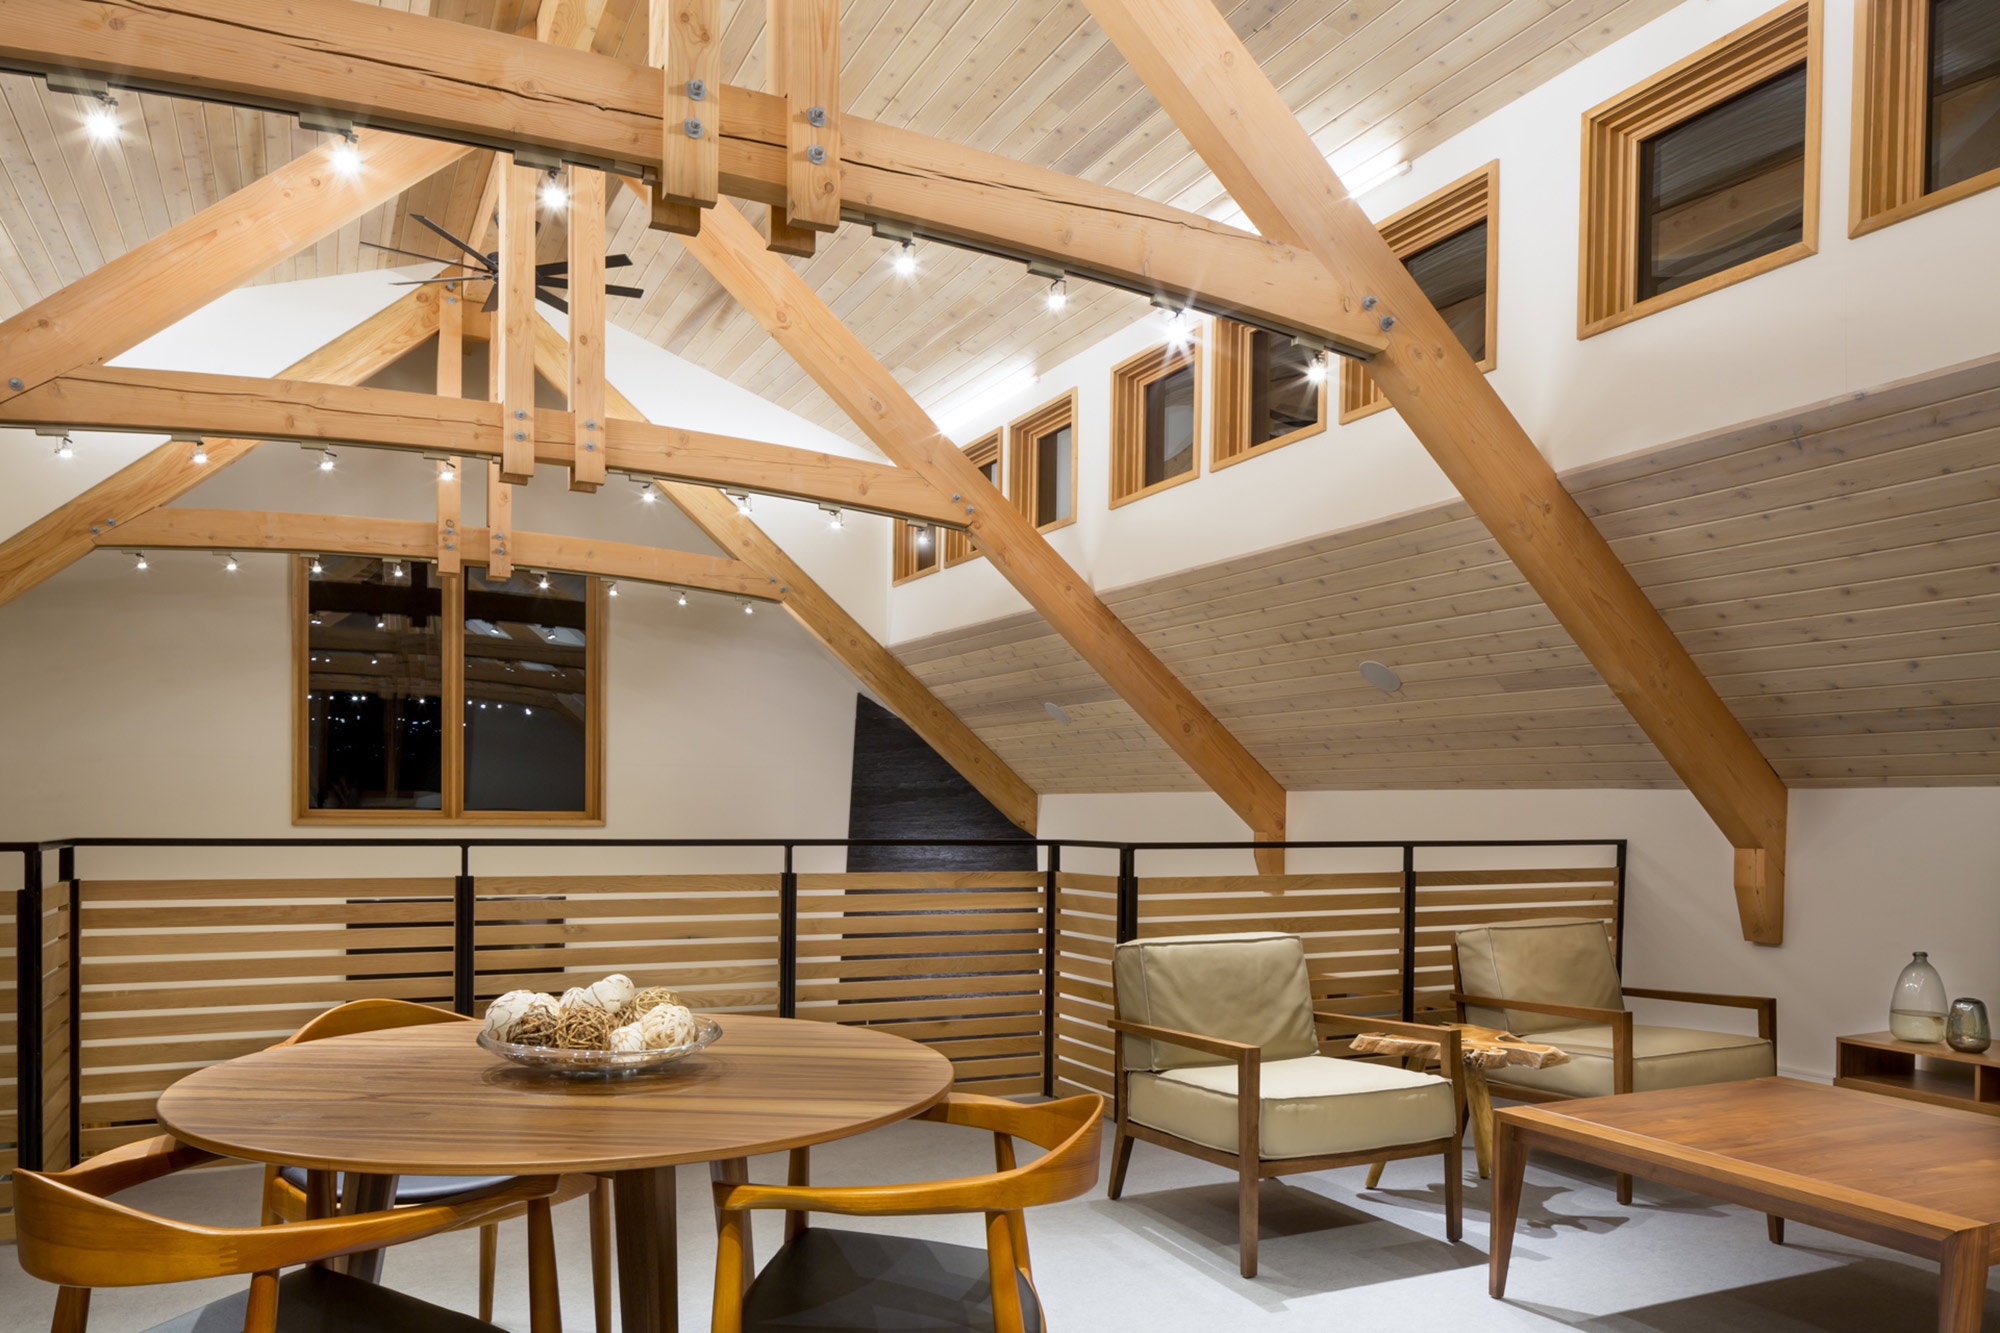 interior-design-welcome-centre-common-area-exposed-beams.jpg